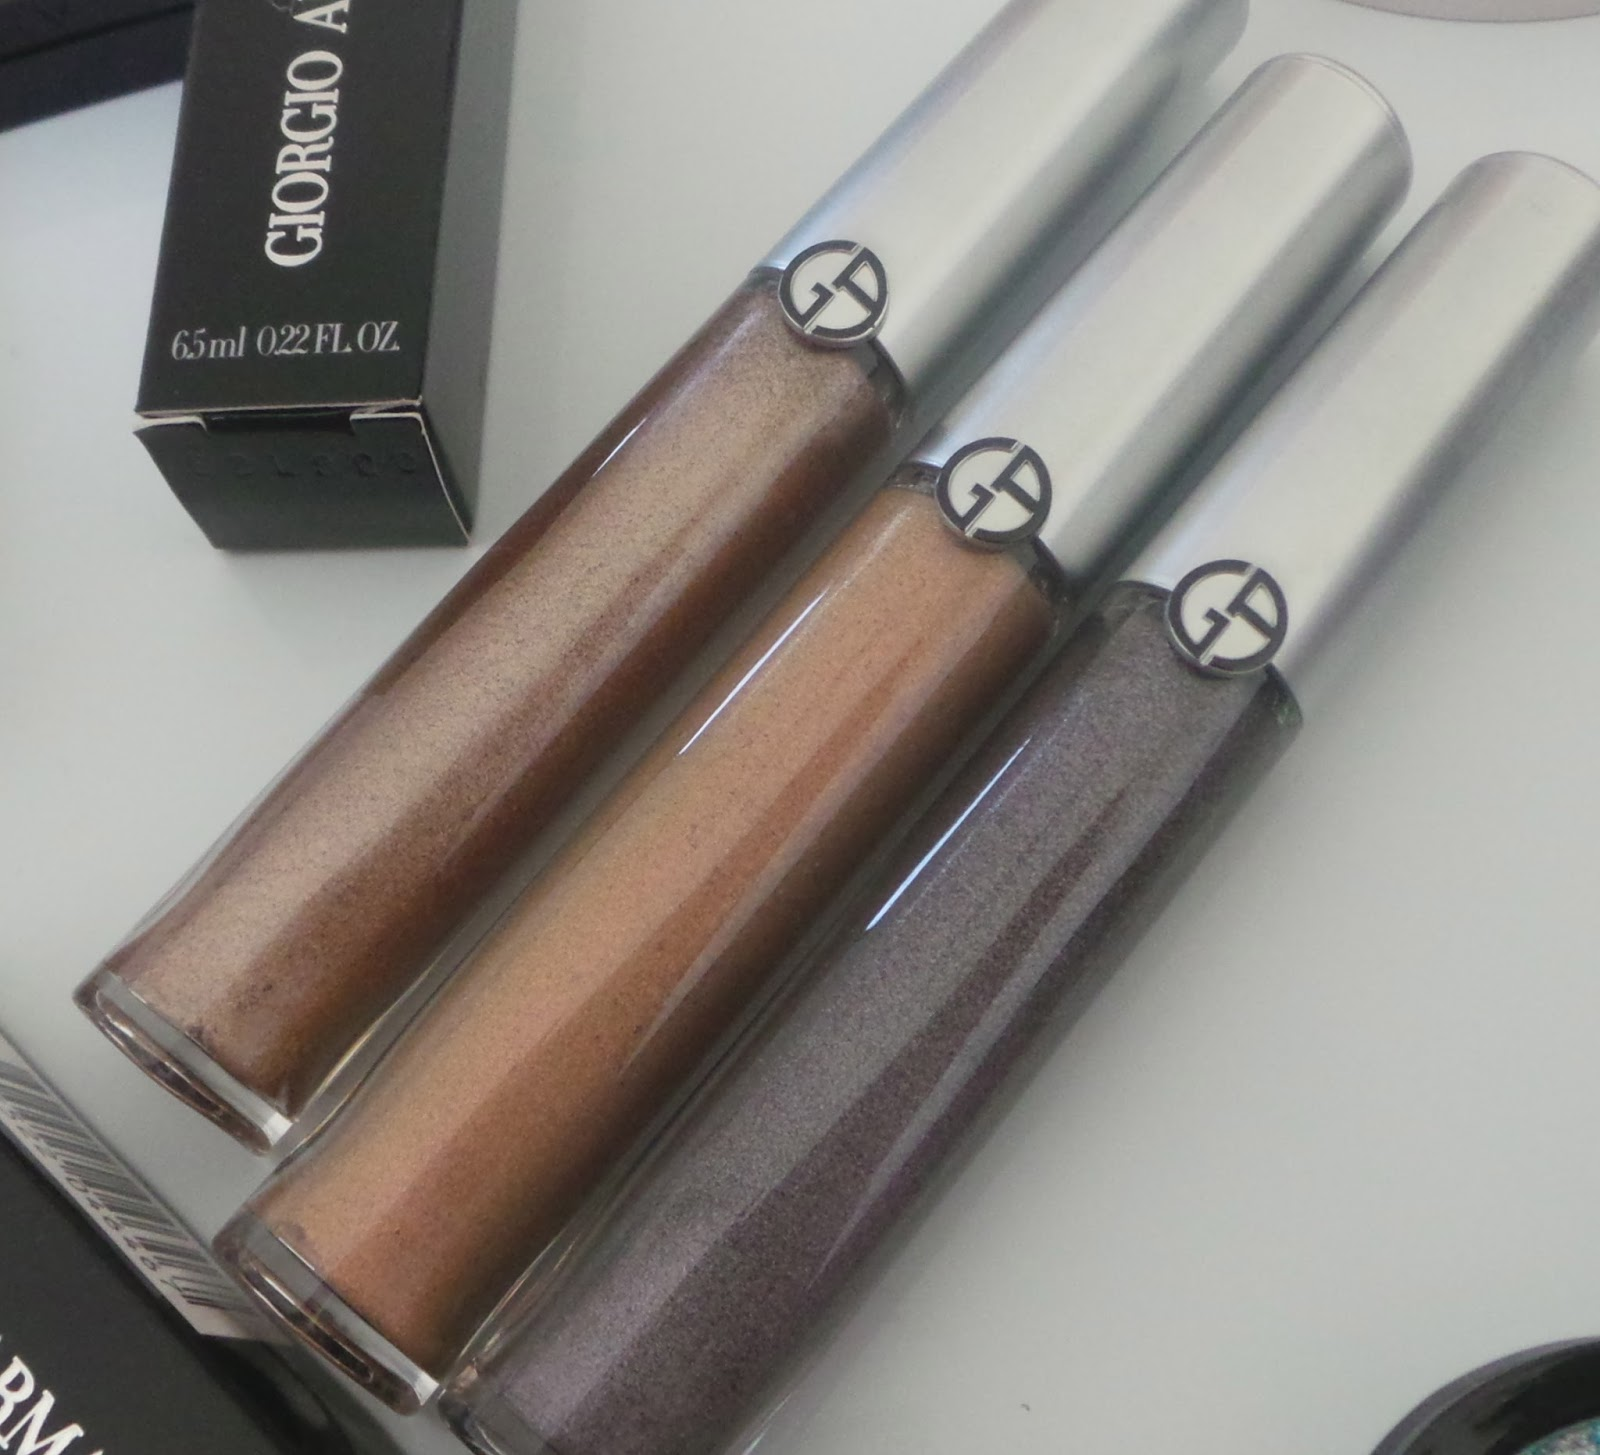 Armani Eye Tint review